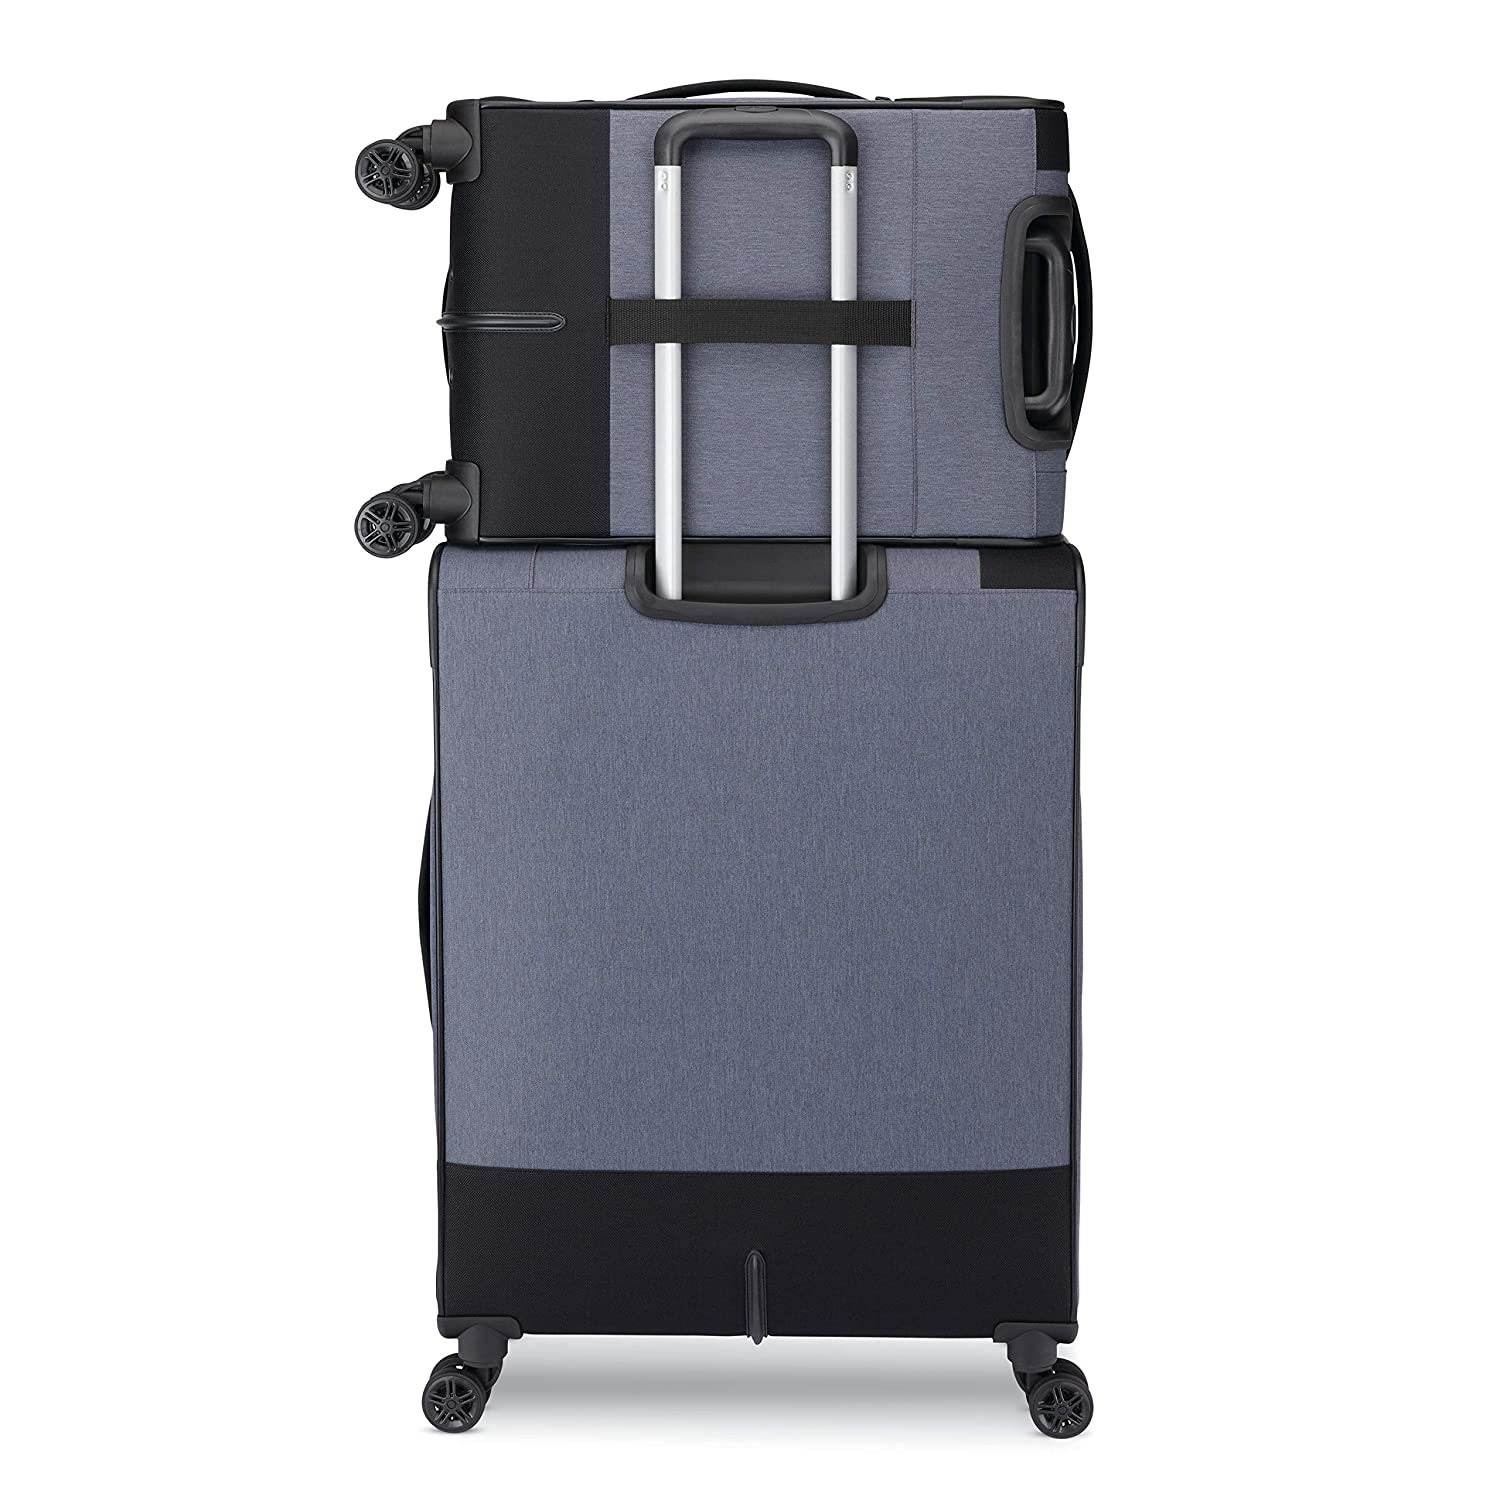 Heather Grey//Black American Tourister Istack Travel System Softside 2-Piece Setwith Double Air Flow Spinner Wheels